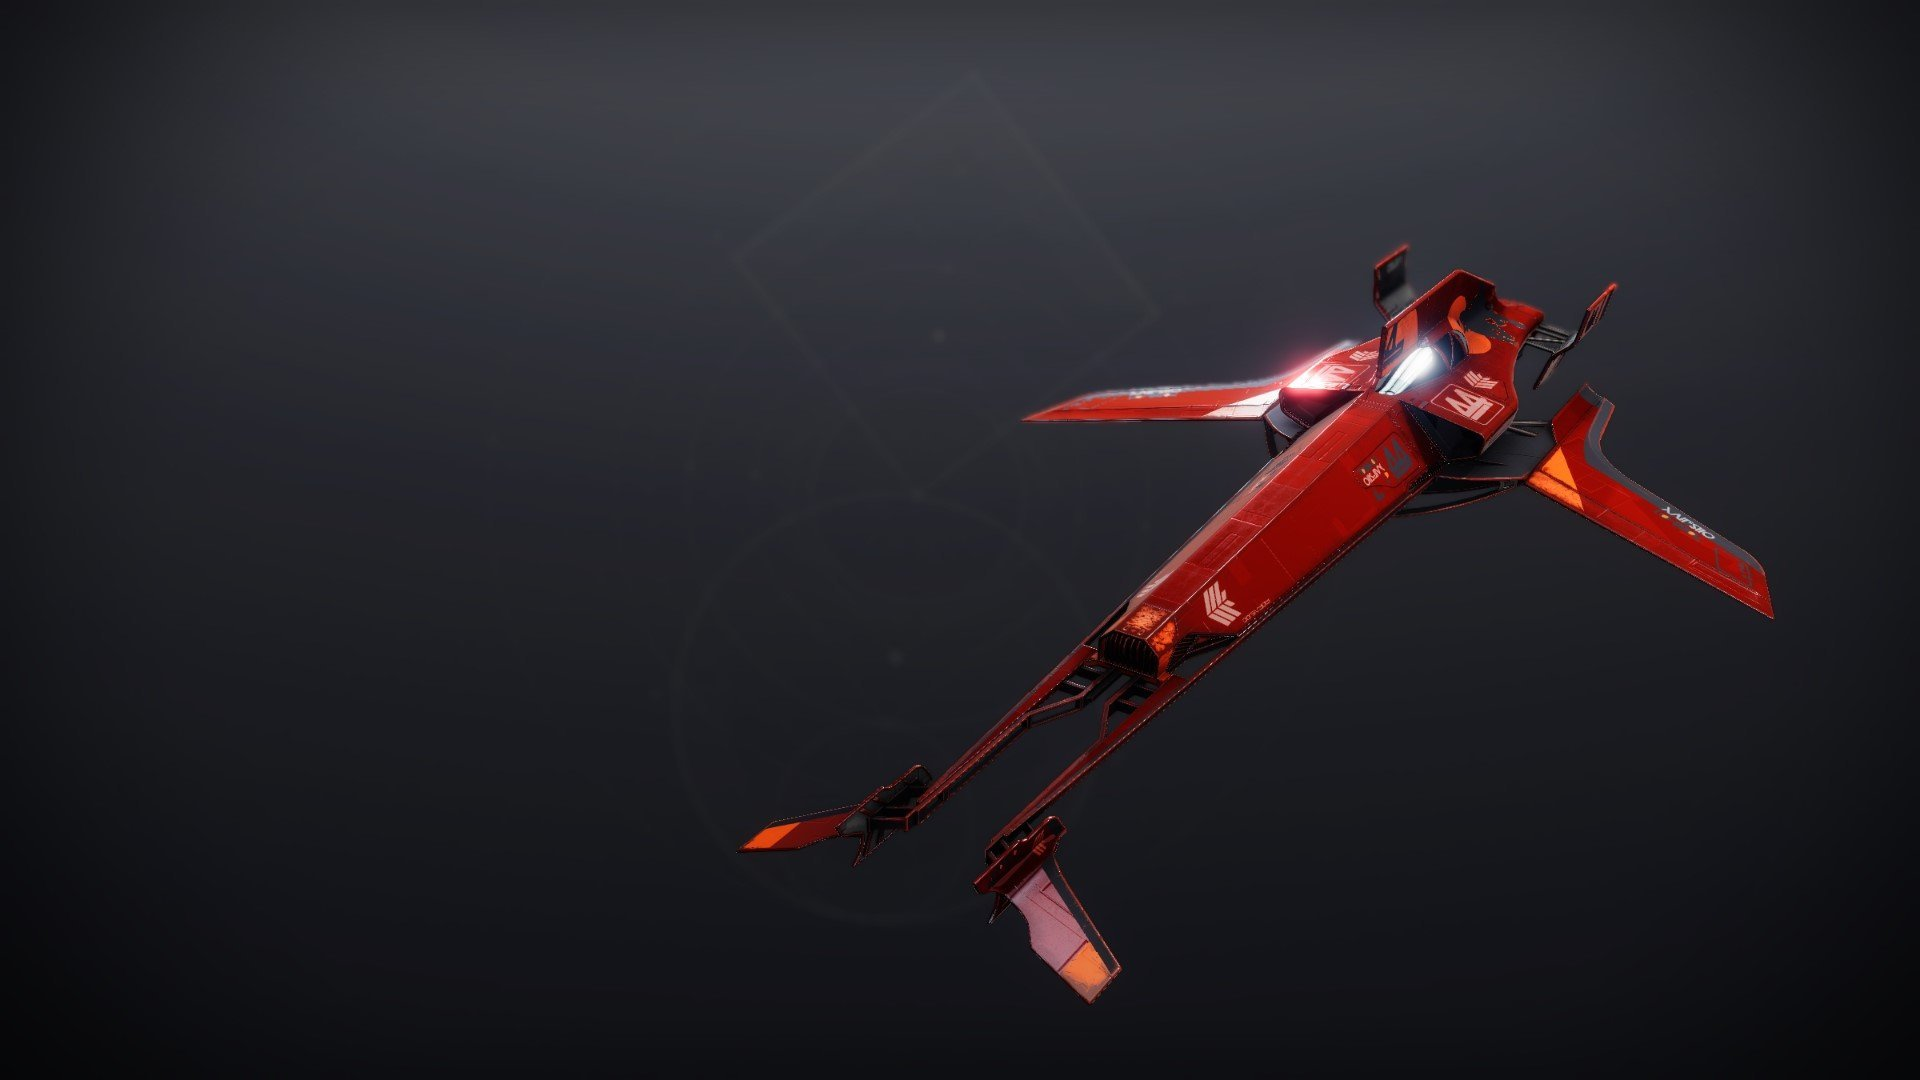 An in-game render of the Aoki/Faas SL-65.